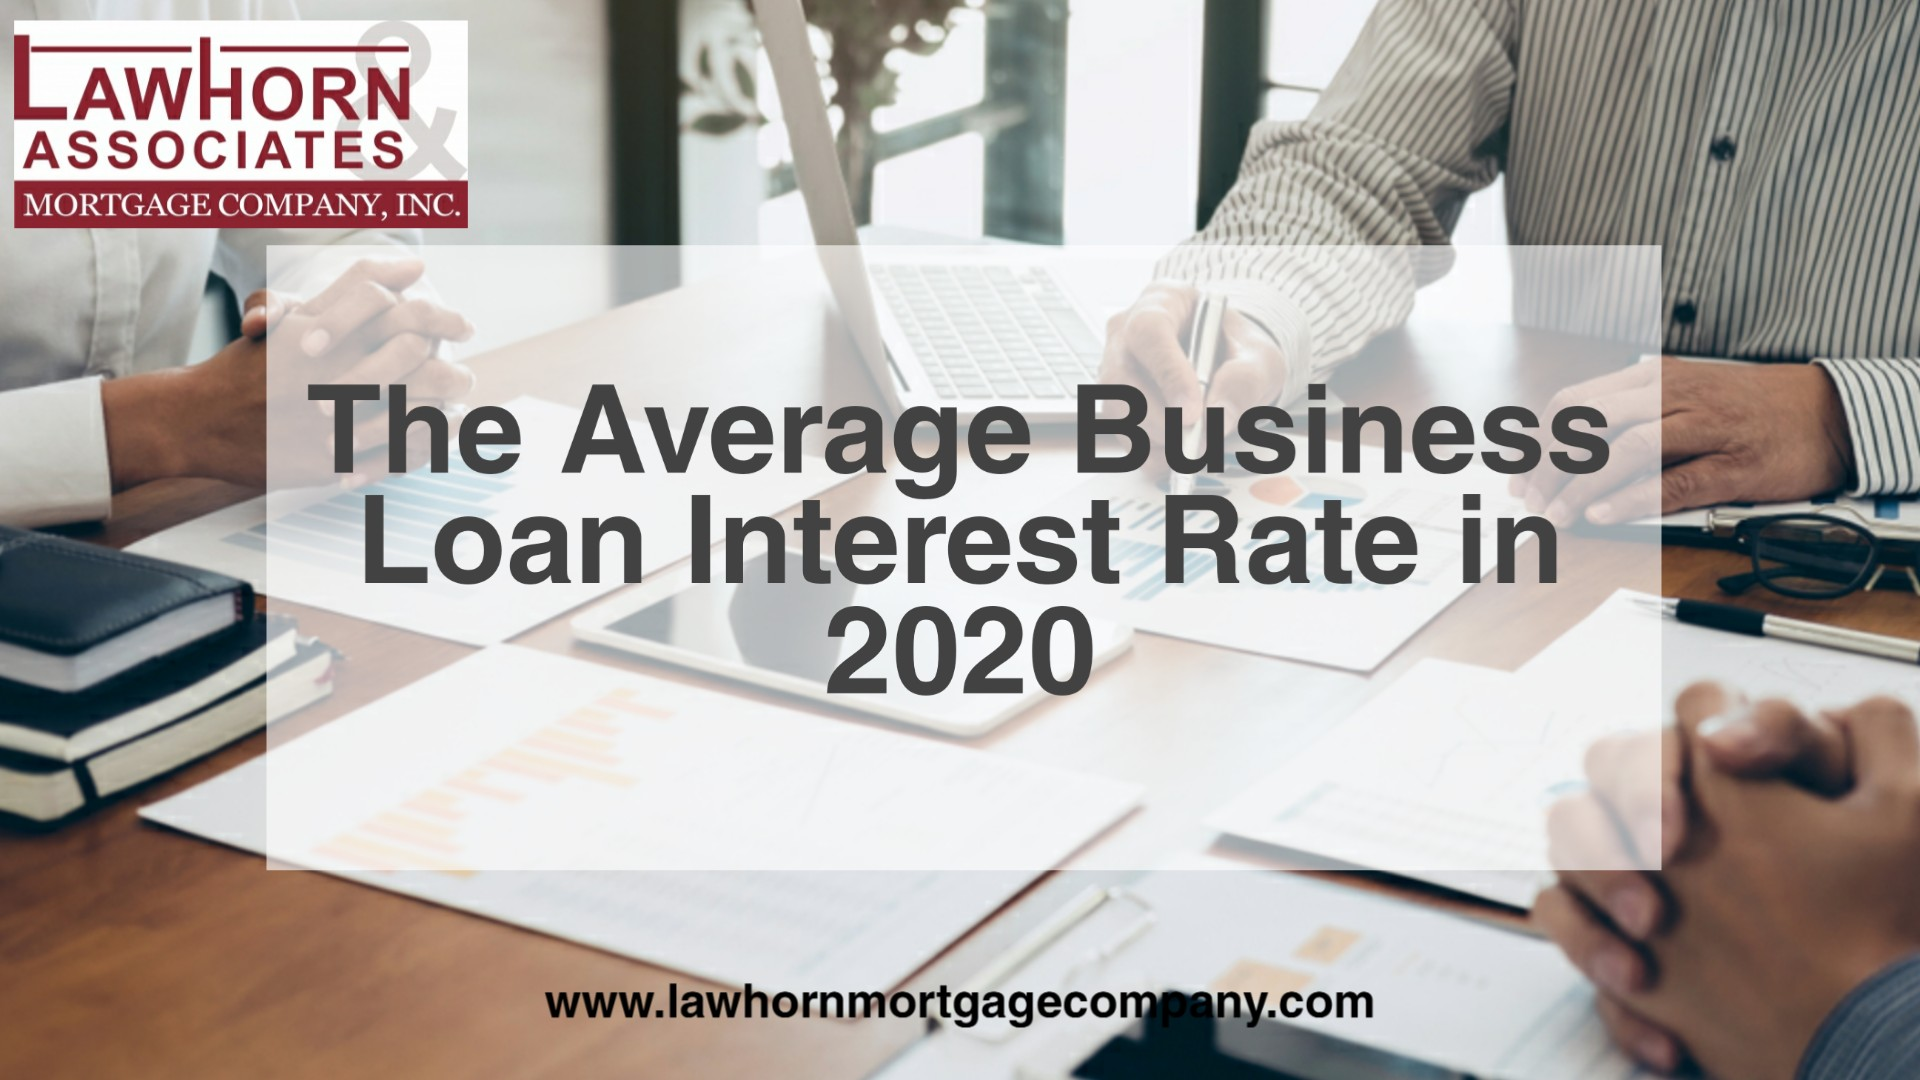 The Average Business Loan Interest Rate In 2020